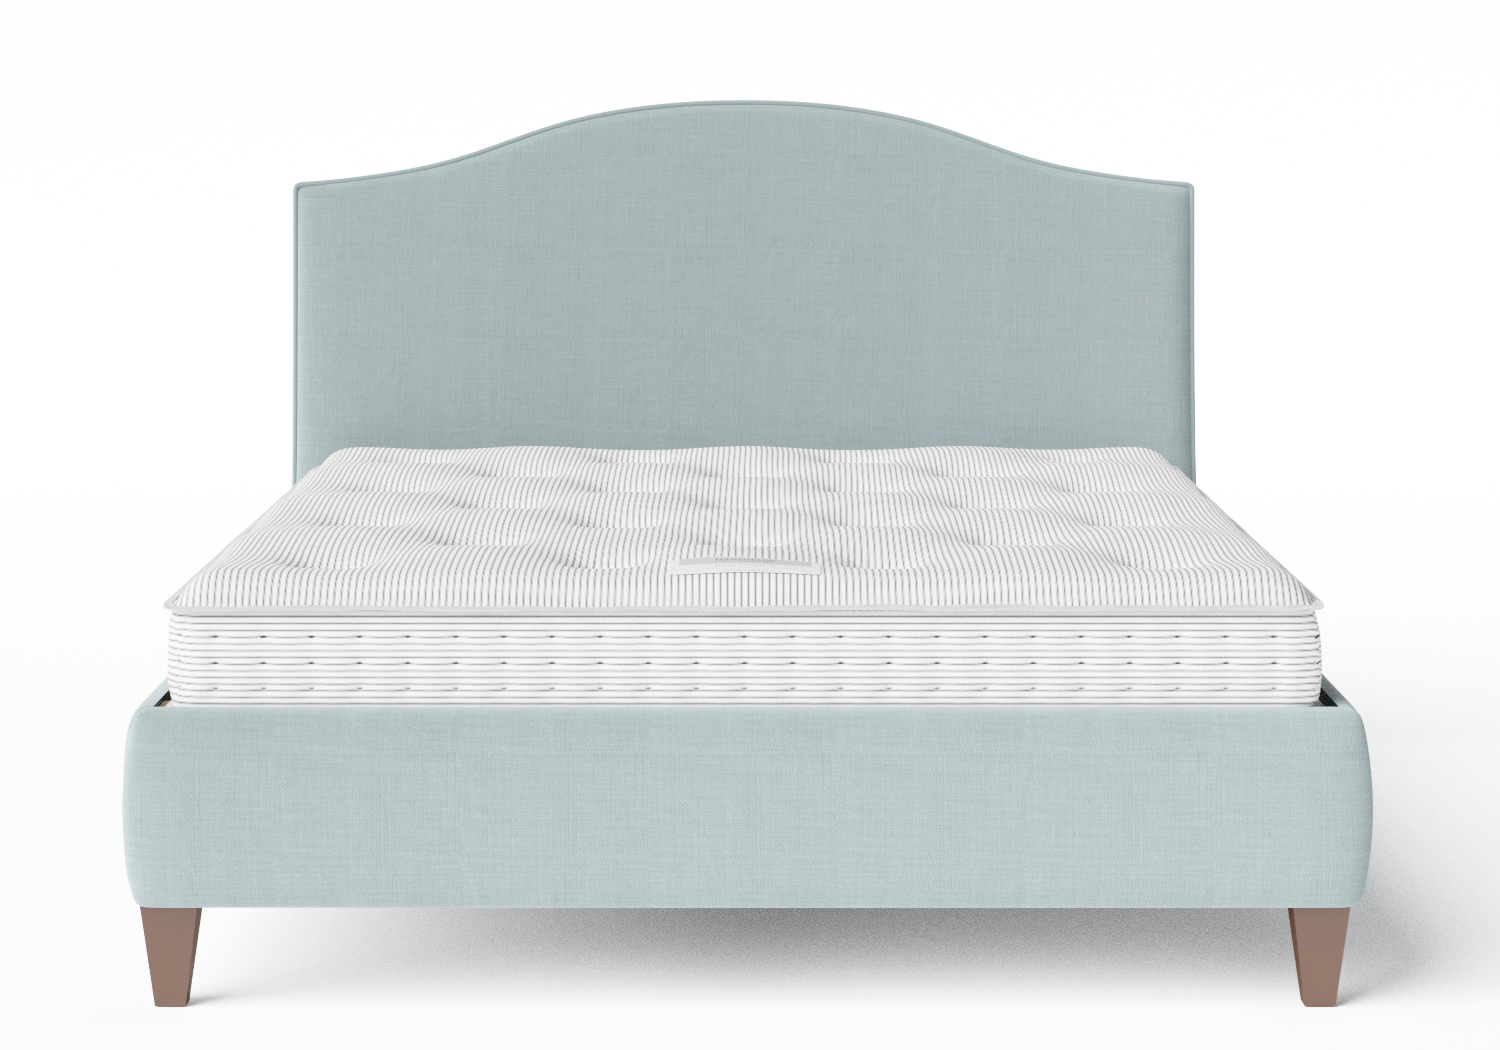 Daniella Upholstered bed in Wedgewood fabric with piping shown with Juno 1 mattress